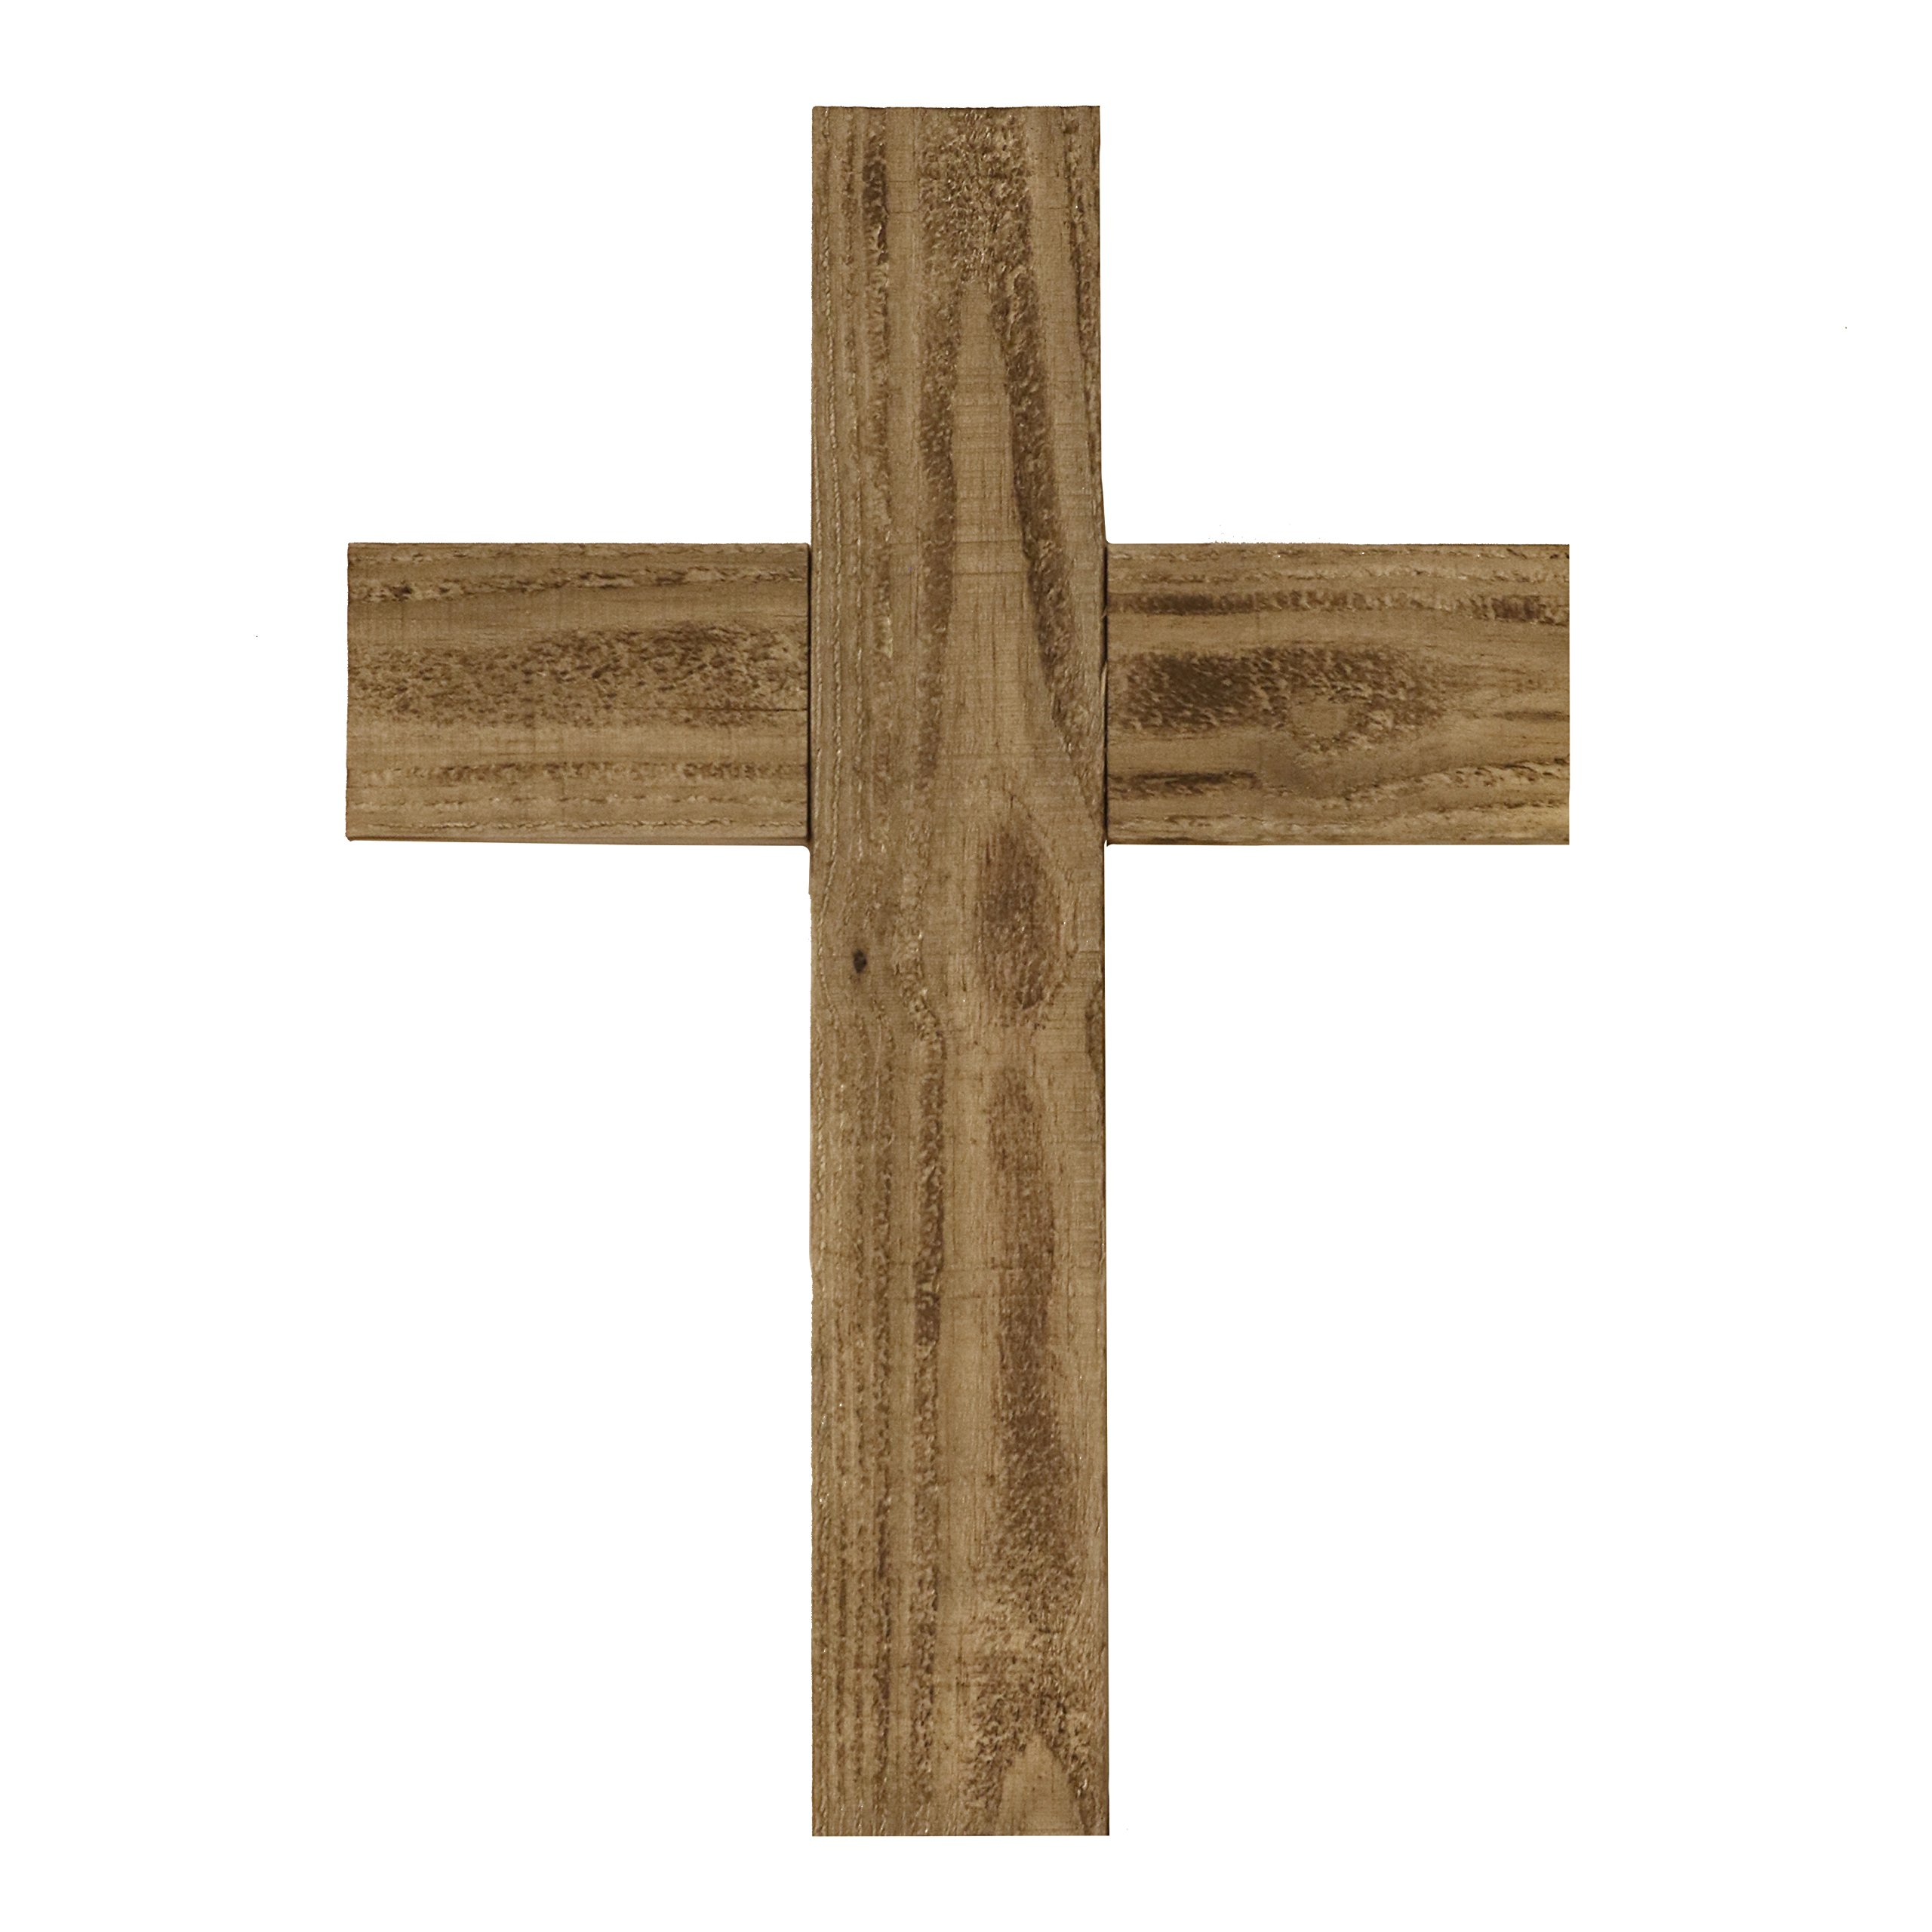 Ekena Millwork DECR020X036X1500CRSUF Vintage Farmhouse Cross Decor Collection, 20'' W x 36'' H x 1 1/2'' D, Natural Barnwood